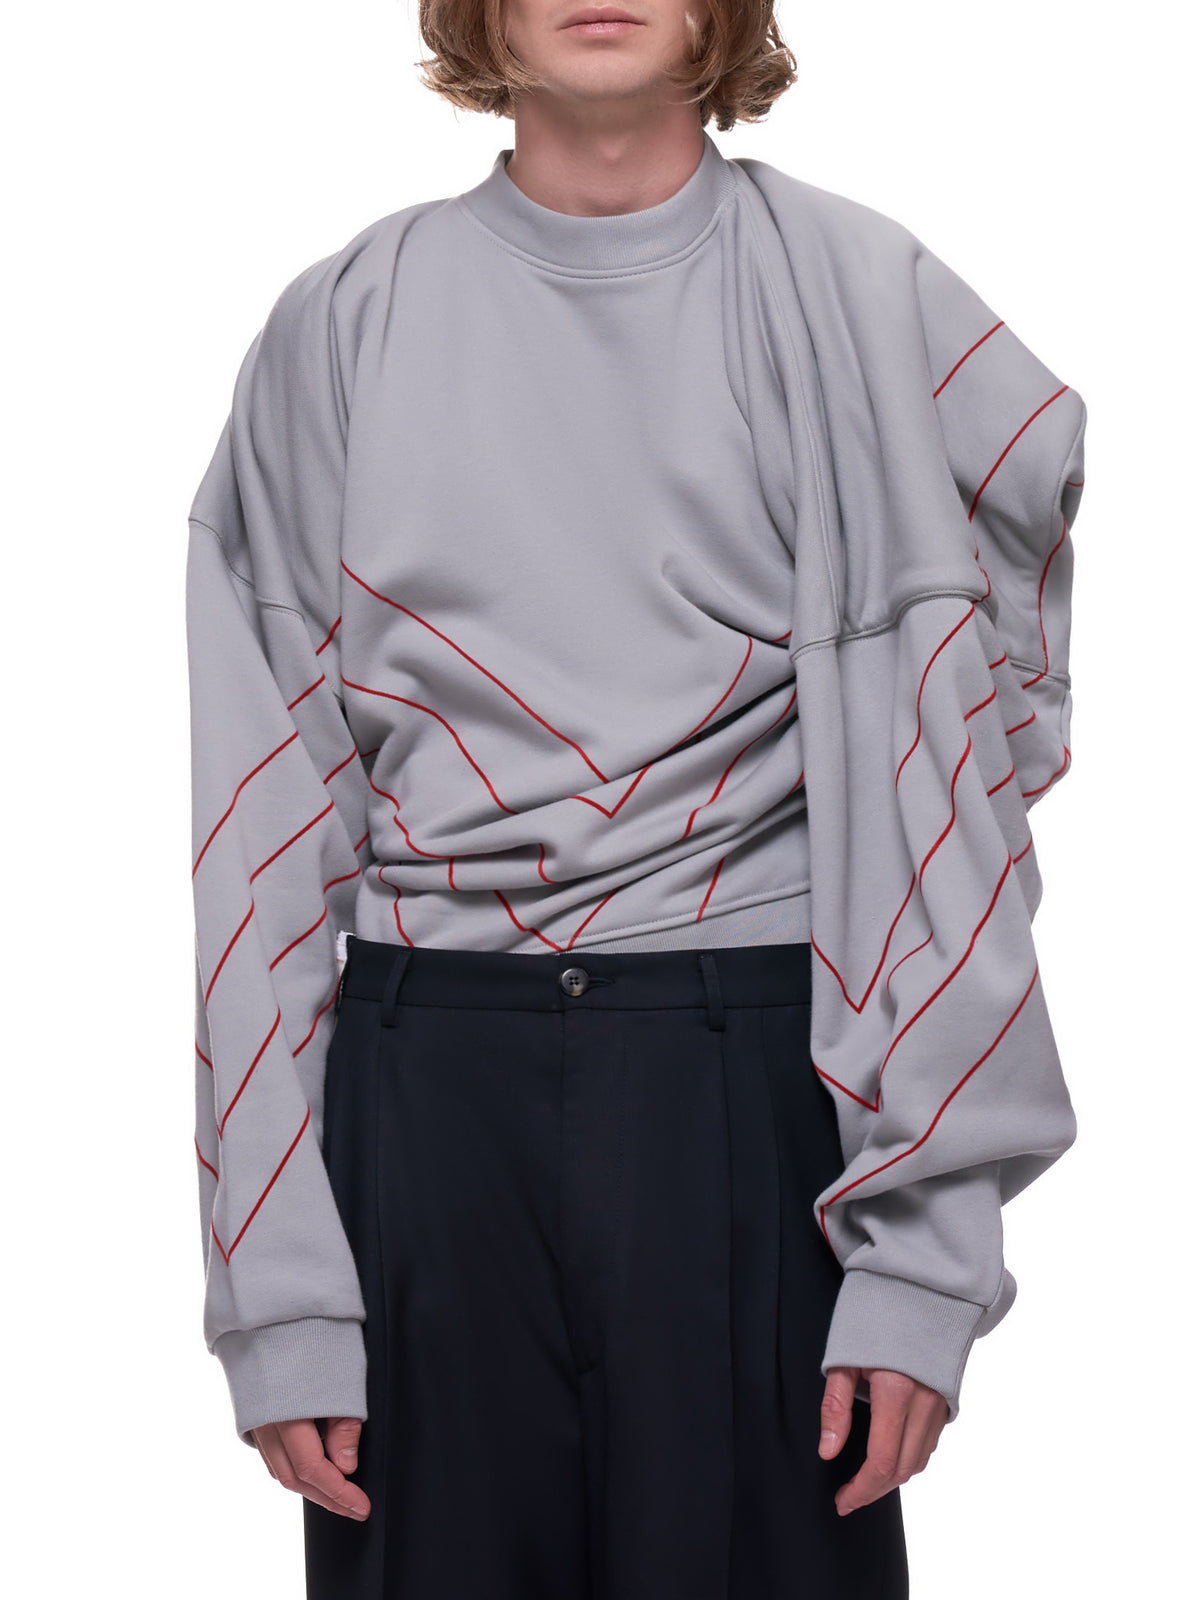 Y/Project Sweater | H.Lorenzo Front